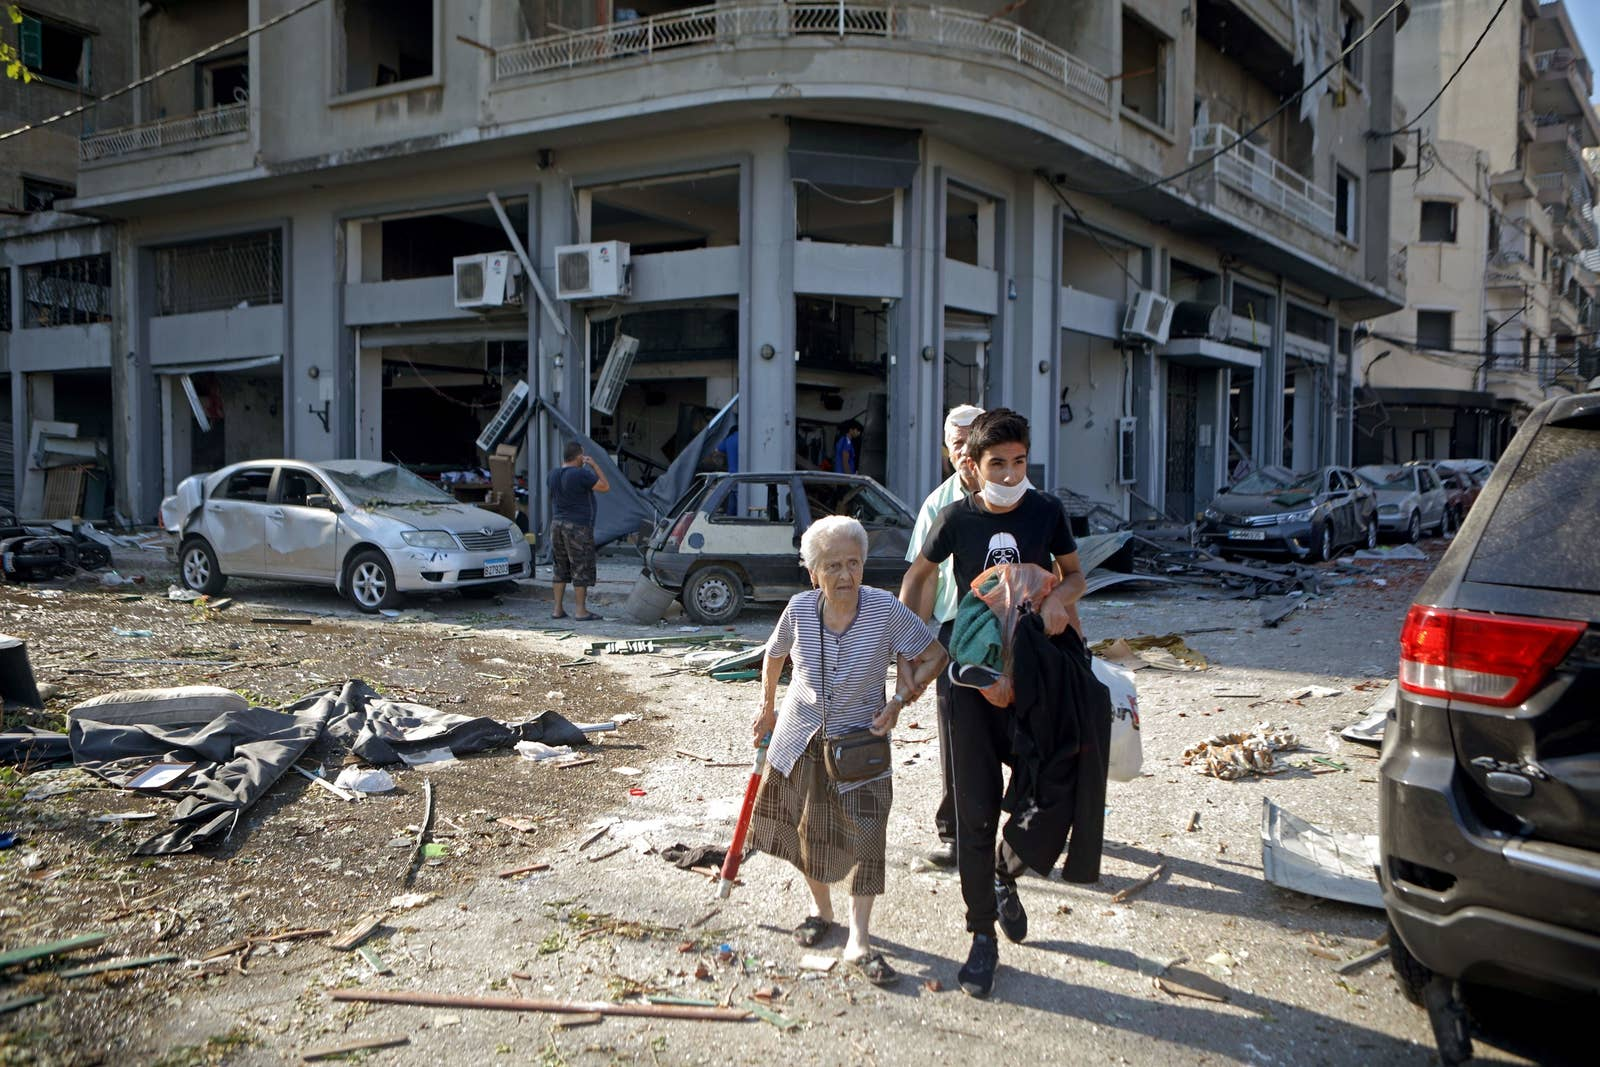 A young man walks an old woman down a destroyed street